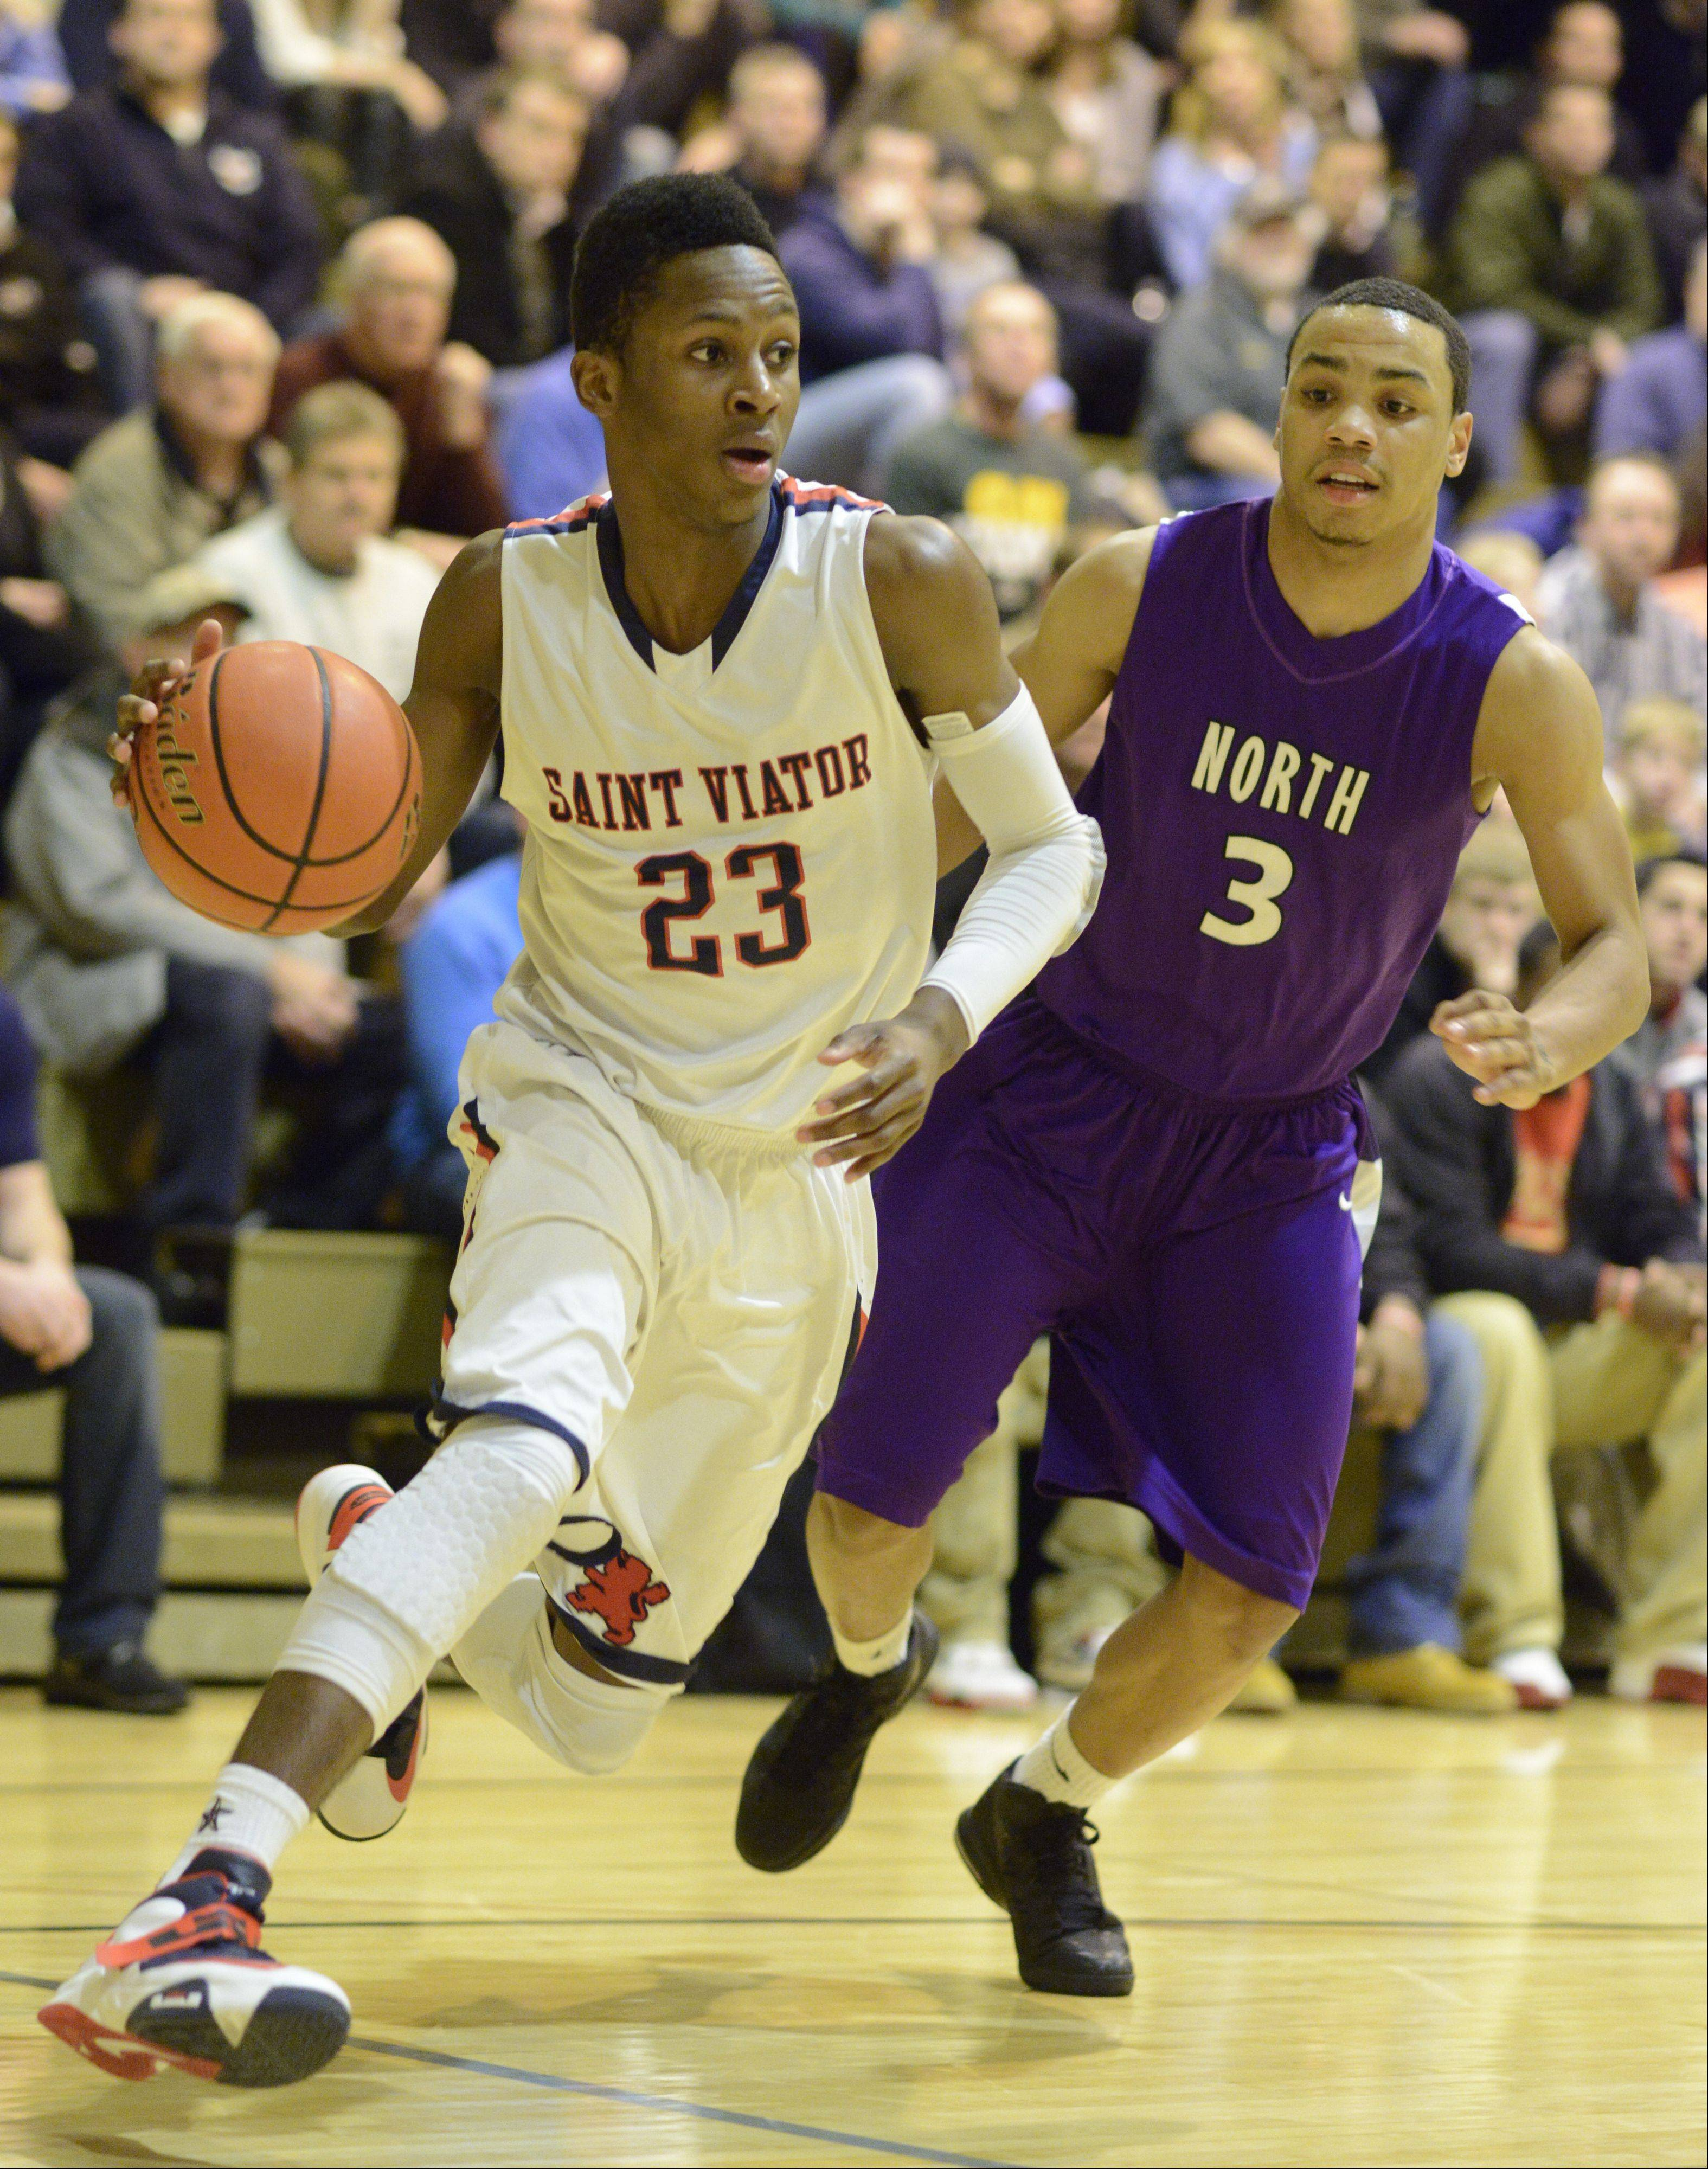 Images from the St. Viator vs. Niles North boys basketball game on Friday, December 28th, at the Wheeling High School holiday basketball tournament.